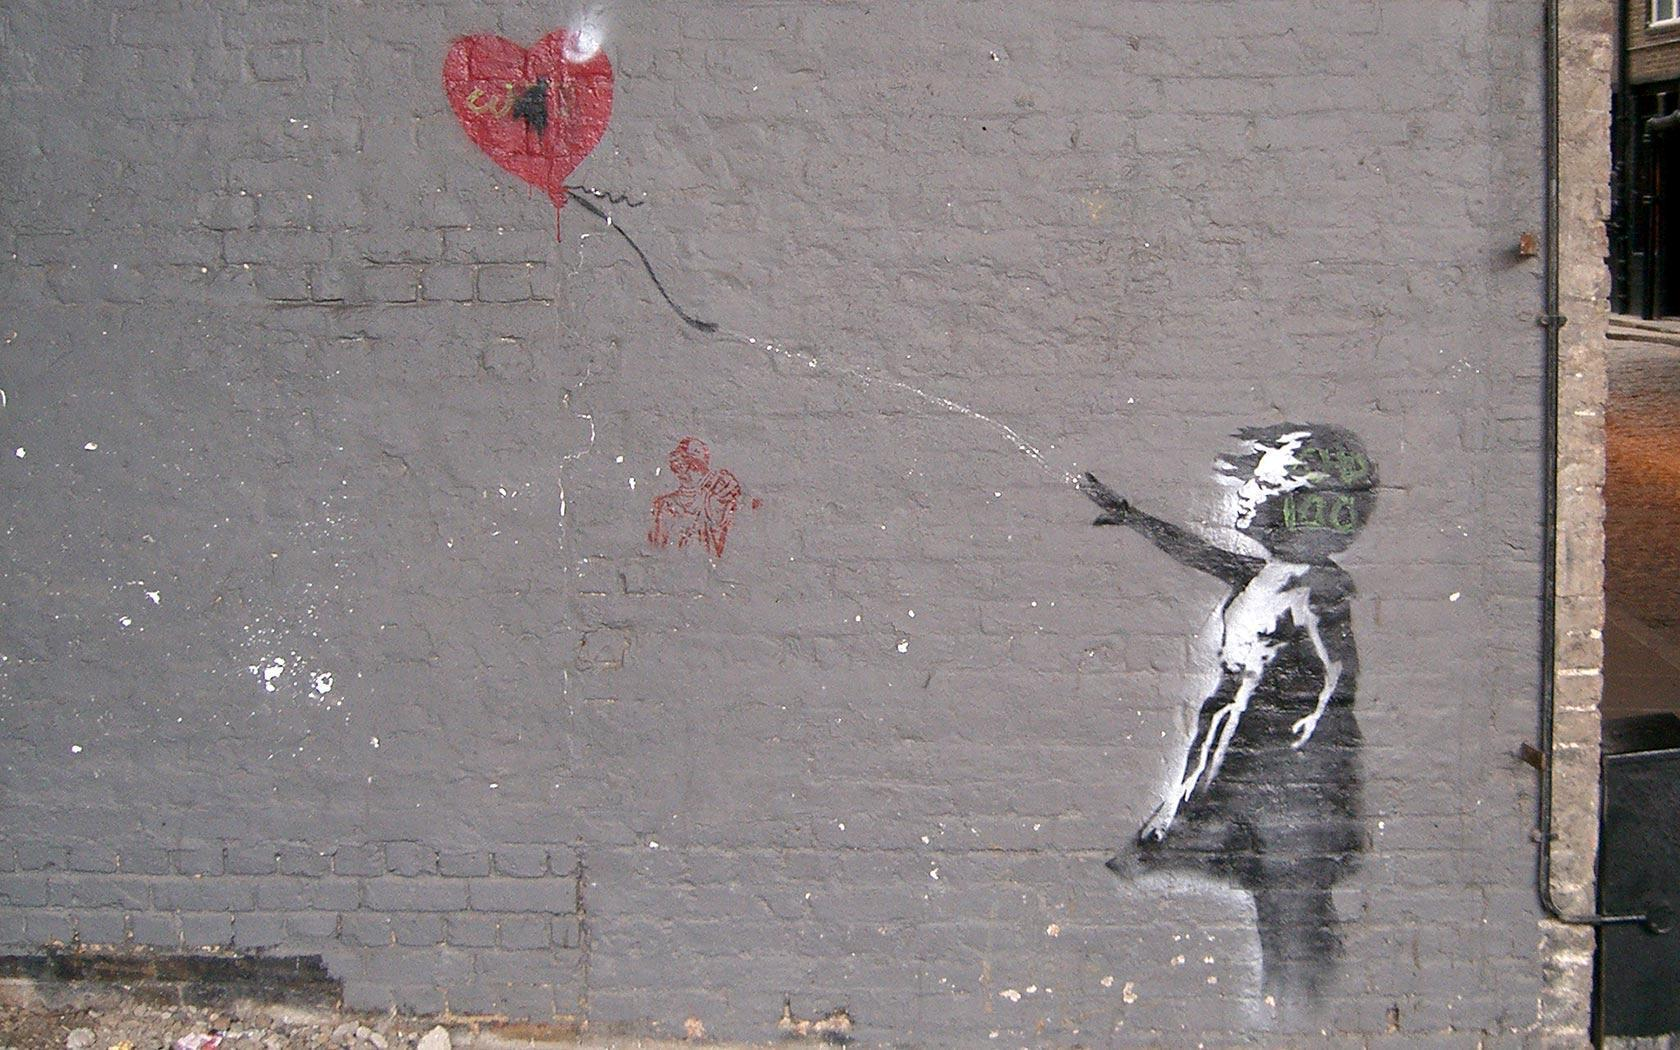 Banksy Hd Wallpaper: Banksy Backgrounds